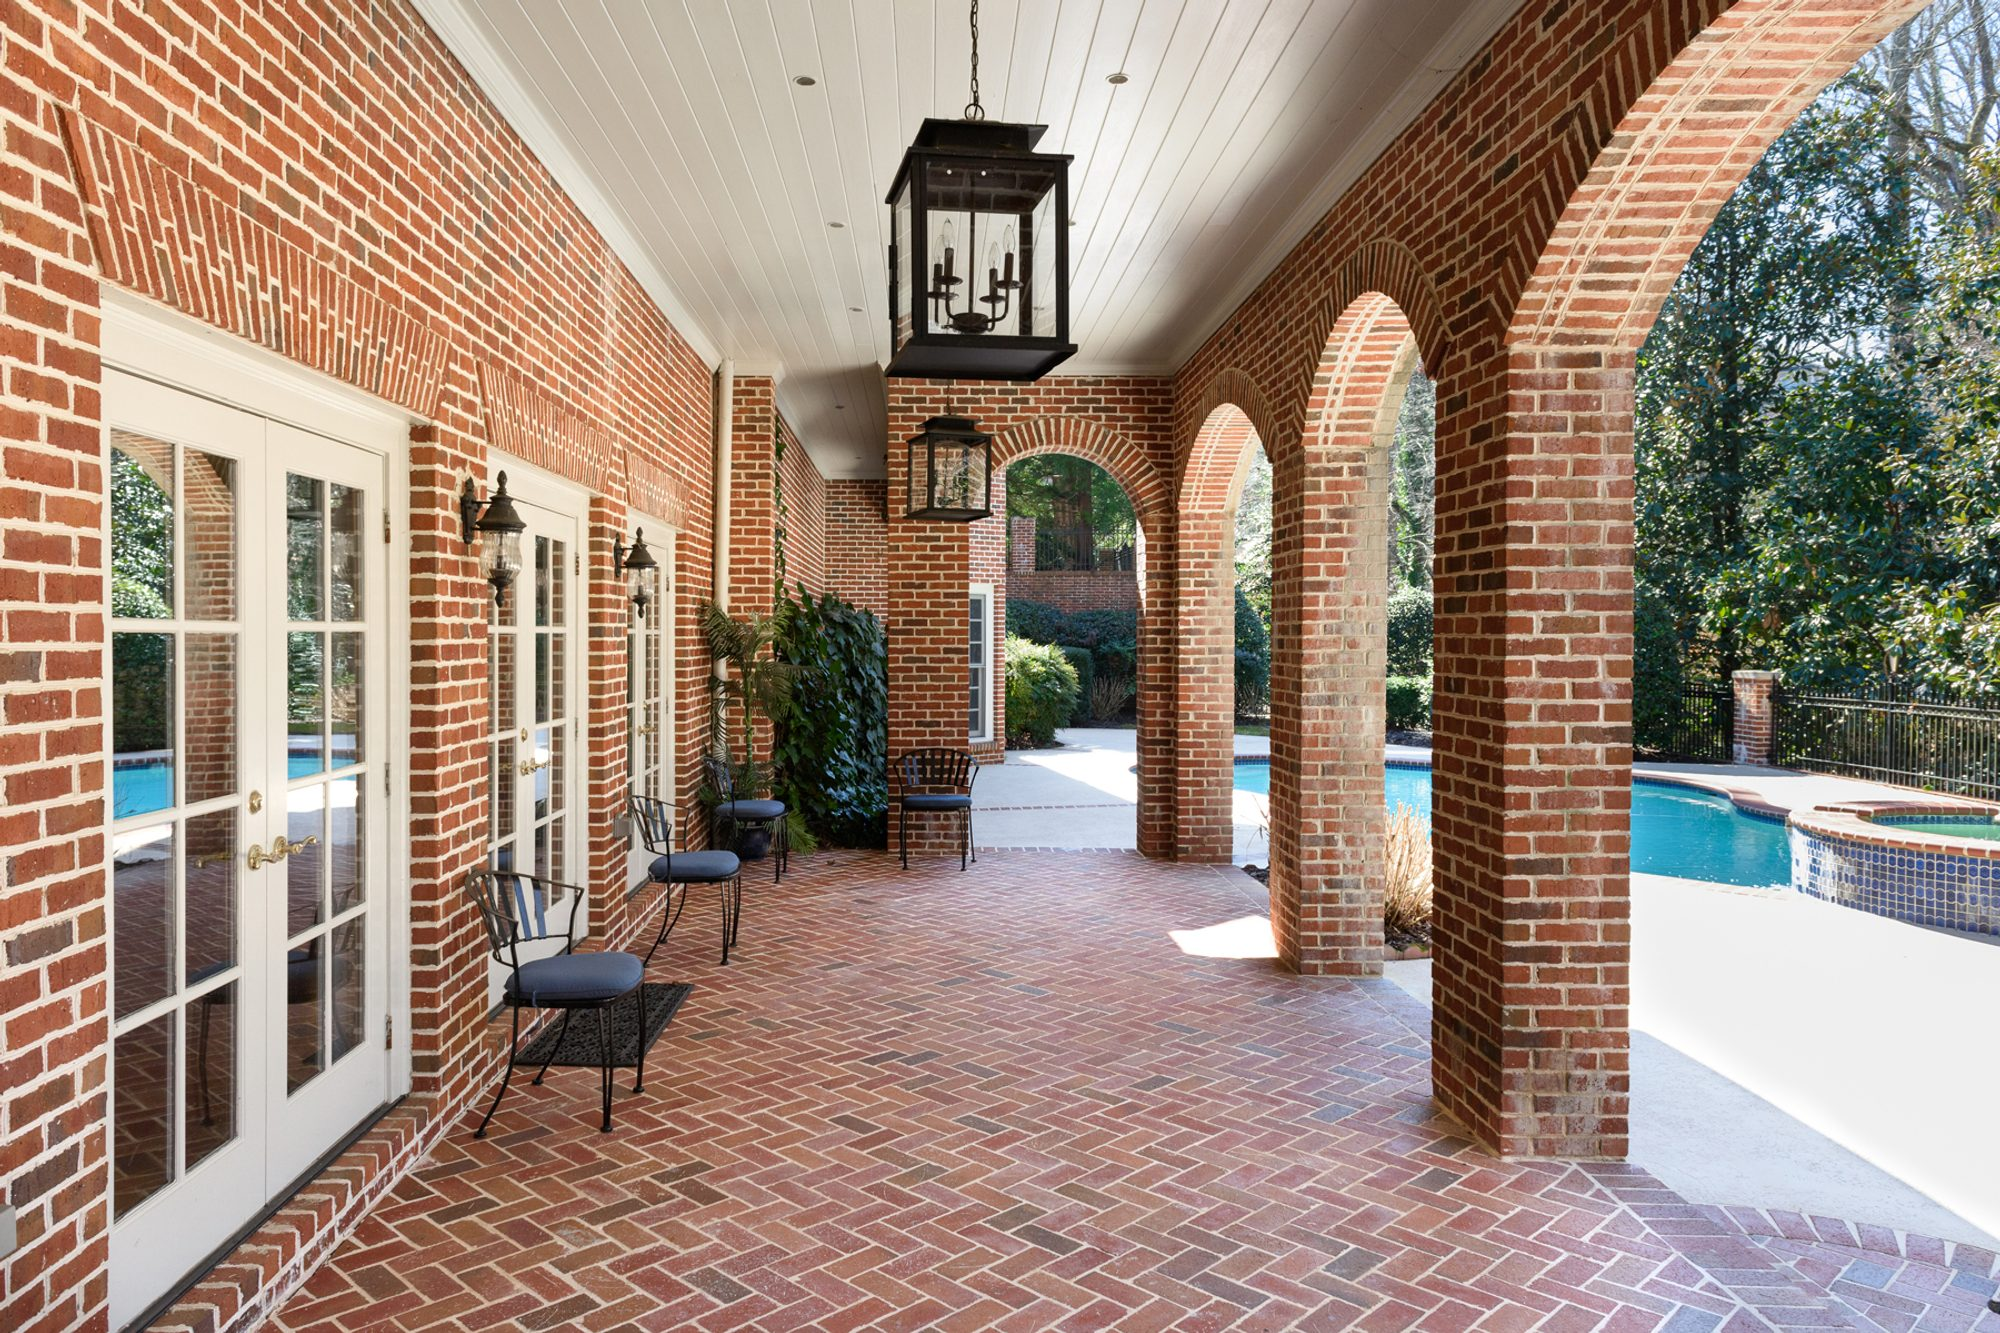 Covered herringbone red brick patio with border trim, red brick siding and columns.